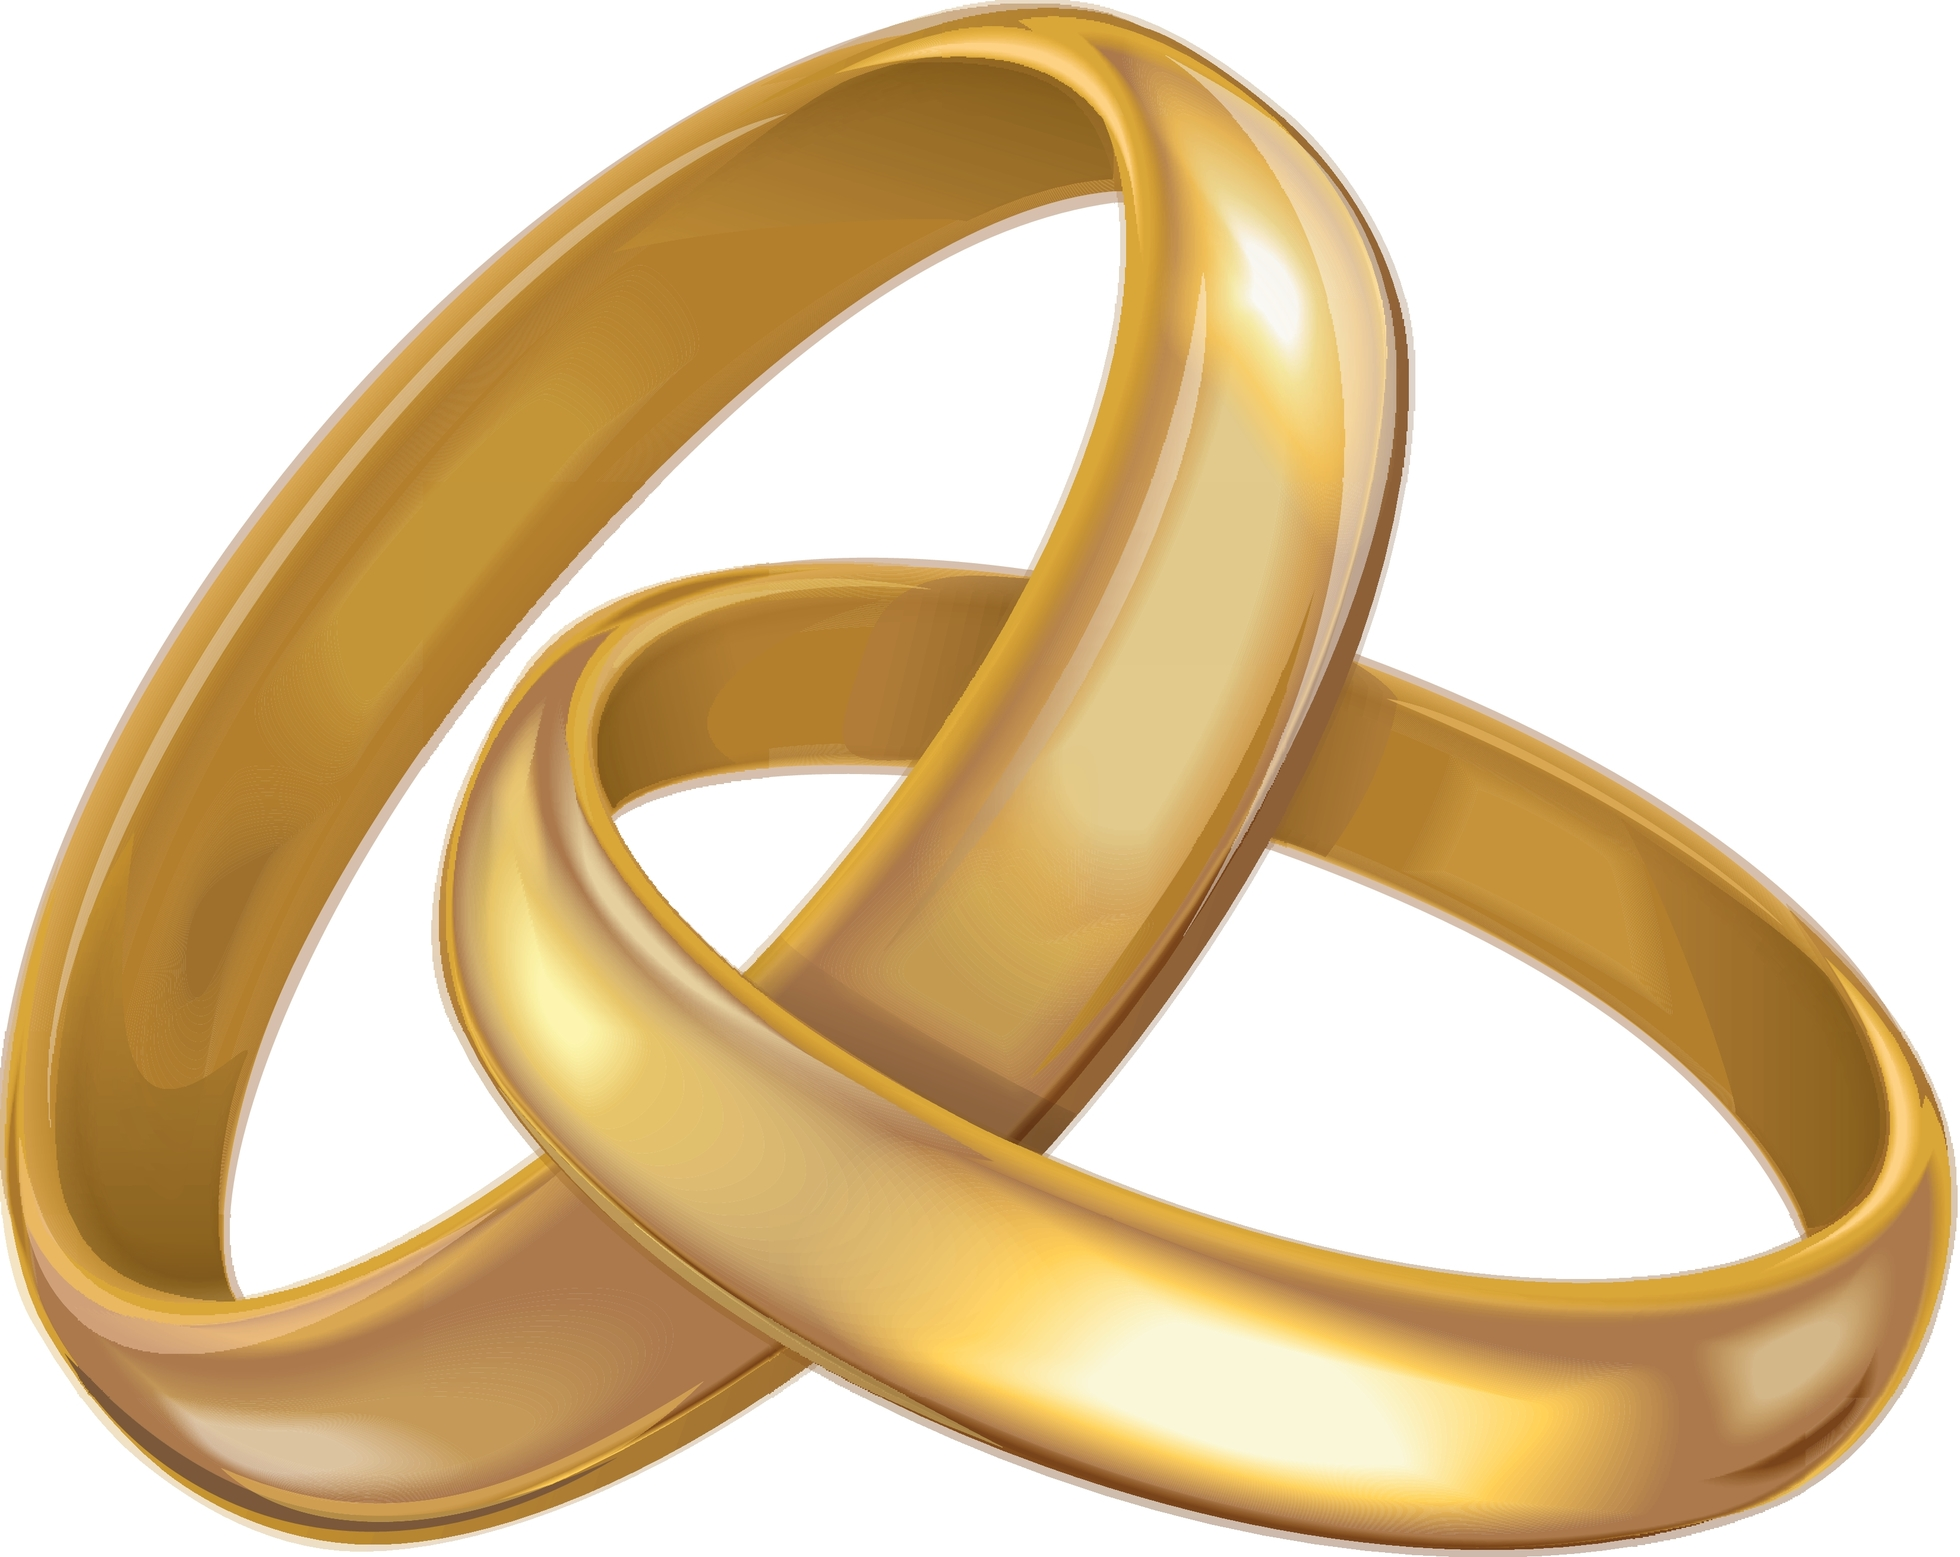 Intertwined Wedding Rings Png & Free Intertwined Wedding.